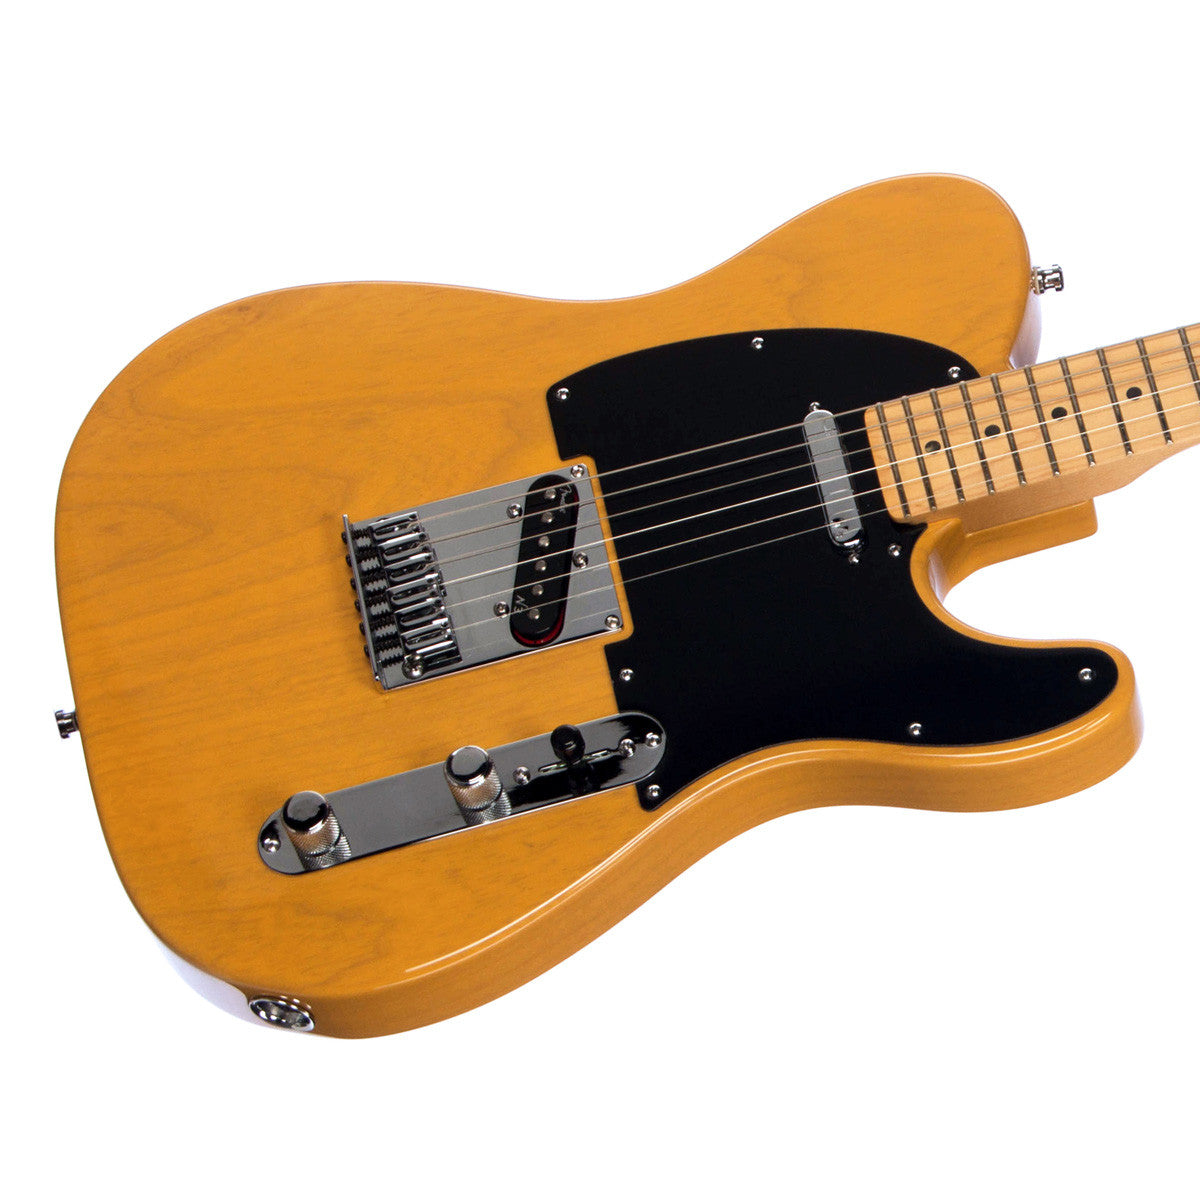 Fender American Deluxe Telecaster Butterscotch Blonde Maken Music Way Switch Wiring Diagram Hsh Besides Jimmy Page